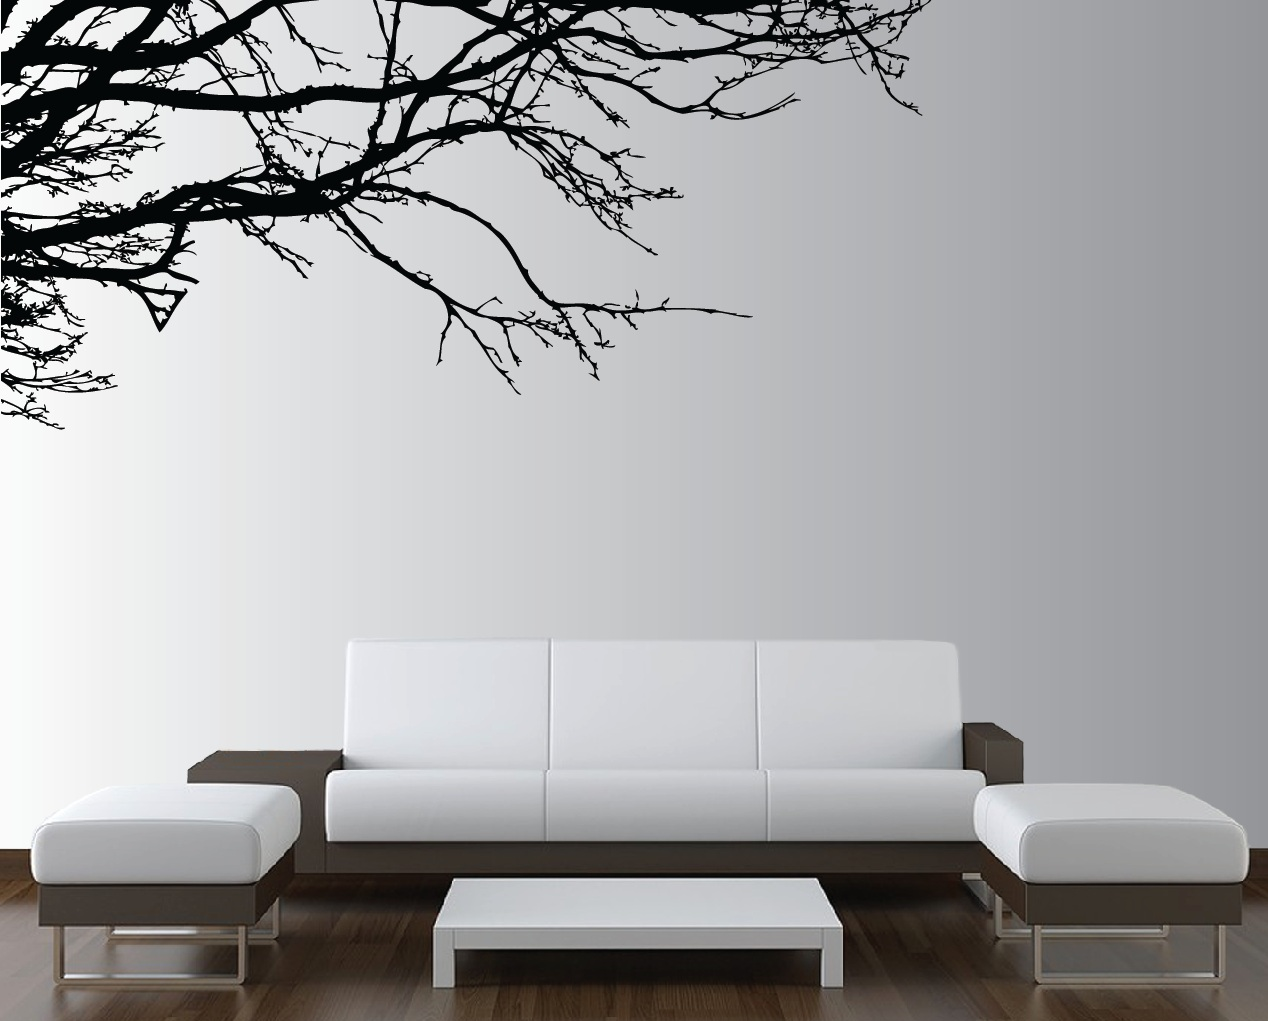 wall decal family art bedroom decor decor tree wall decal living room decor